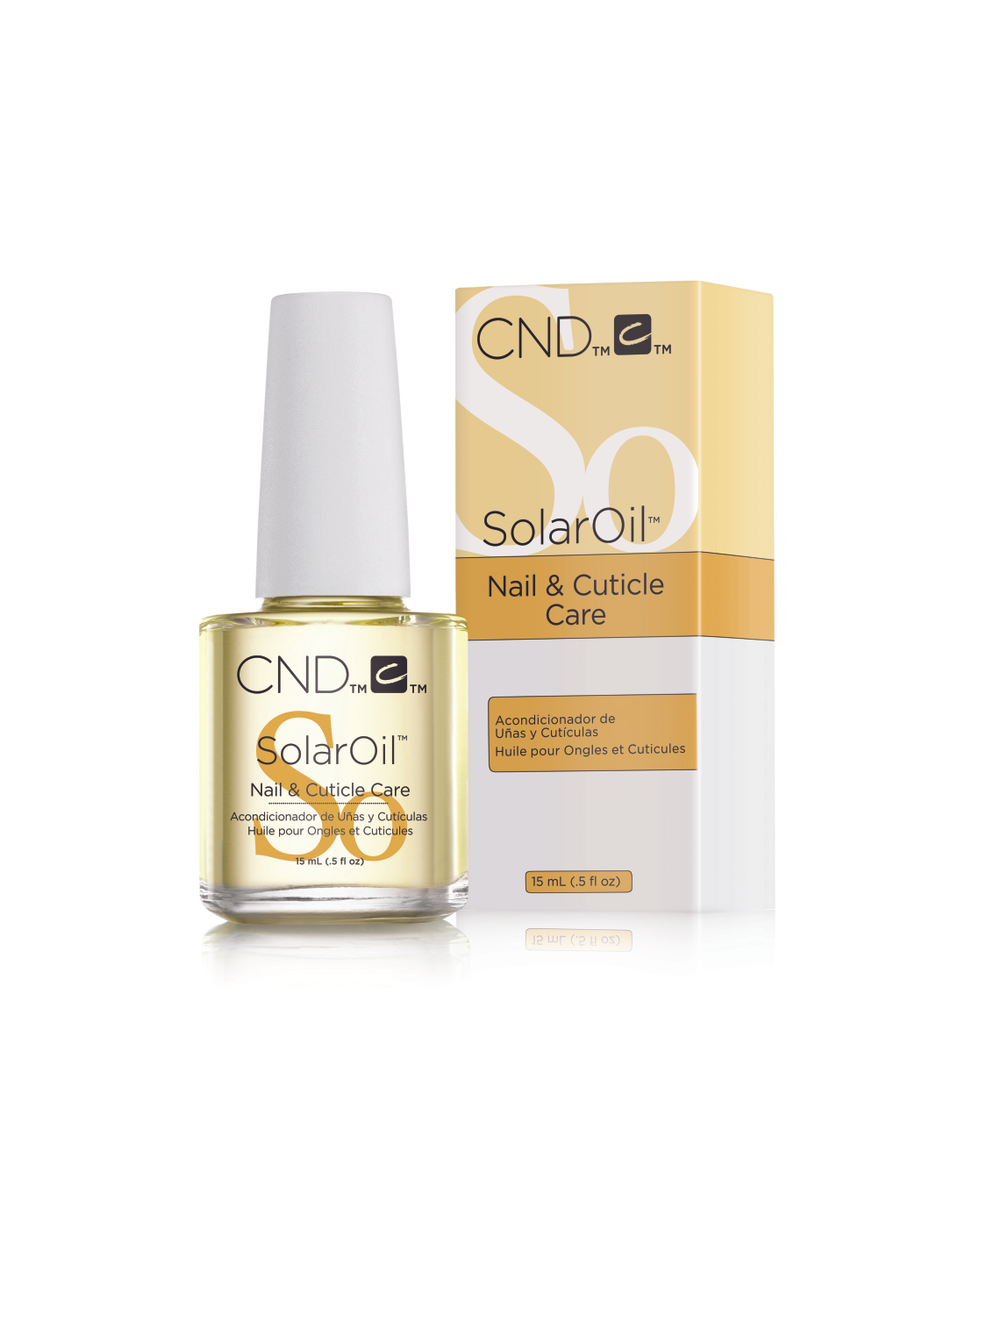 """<p>CND's SolarOil nail and cuticle oil is infused with jojoba oil and vitamin E and is designed to deeply penetrate and protect nails. Repeated use drives nutrients in deeper, creating stronger, healthier nails and hydrating the cuticle area. The oil can be used with any nail service. <br /><a href=""""http://www.cnd.com"""">www.cnd.com</a></p>"""